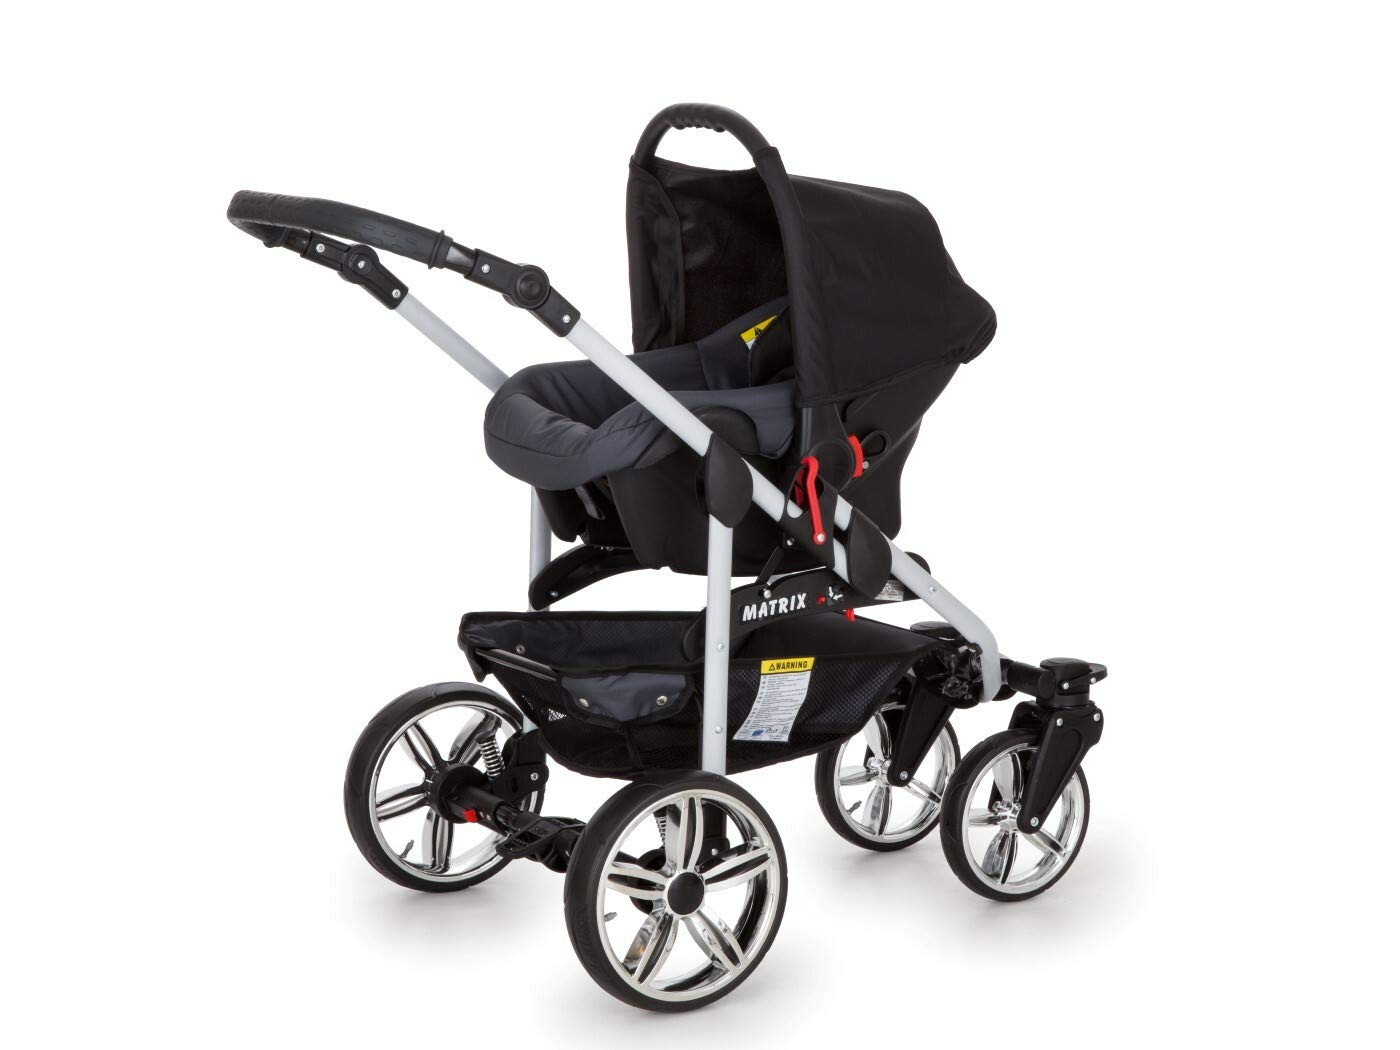 Travel System Stroller Pram Pushchair 2in1 3in1 Set Isofix X-Car by SaintBaby Black & Check 3in1 with Baby seat SaintBaby 3in1 or 2in1 Selectable. At 3in1 you will also receive the car seat (baby seat). Of course you get the baby tub (classic pram) as well as the buggy attachment (sports seat) no matter if 2in1 or 3in1. The car naturally complies with the EU safety standard EN1888. During production and before shipment, each wagon is carefully inspected so that you can be sure you have one of the best wagons. Saintbaby stands for all-in-one carefree packages, so you will also receive a diaper bag in the same colour as the car as well as rain and insect protection free of charge. With all the colours of this pram you will find the pram of your dreams. 3